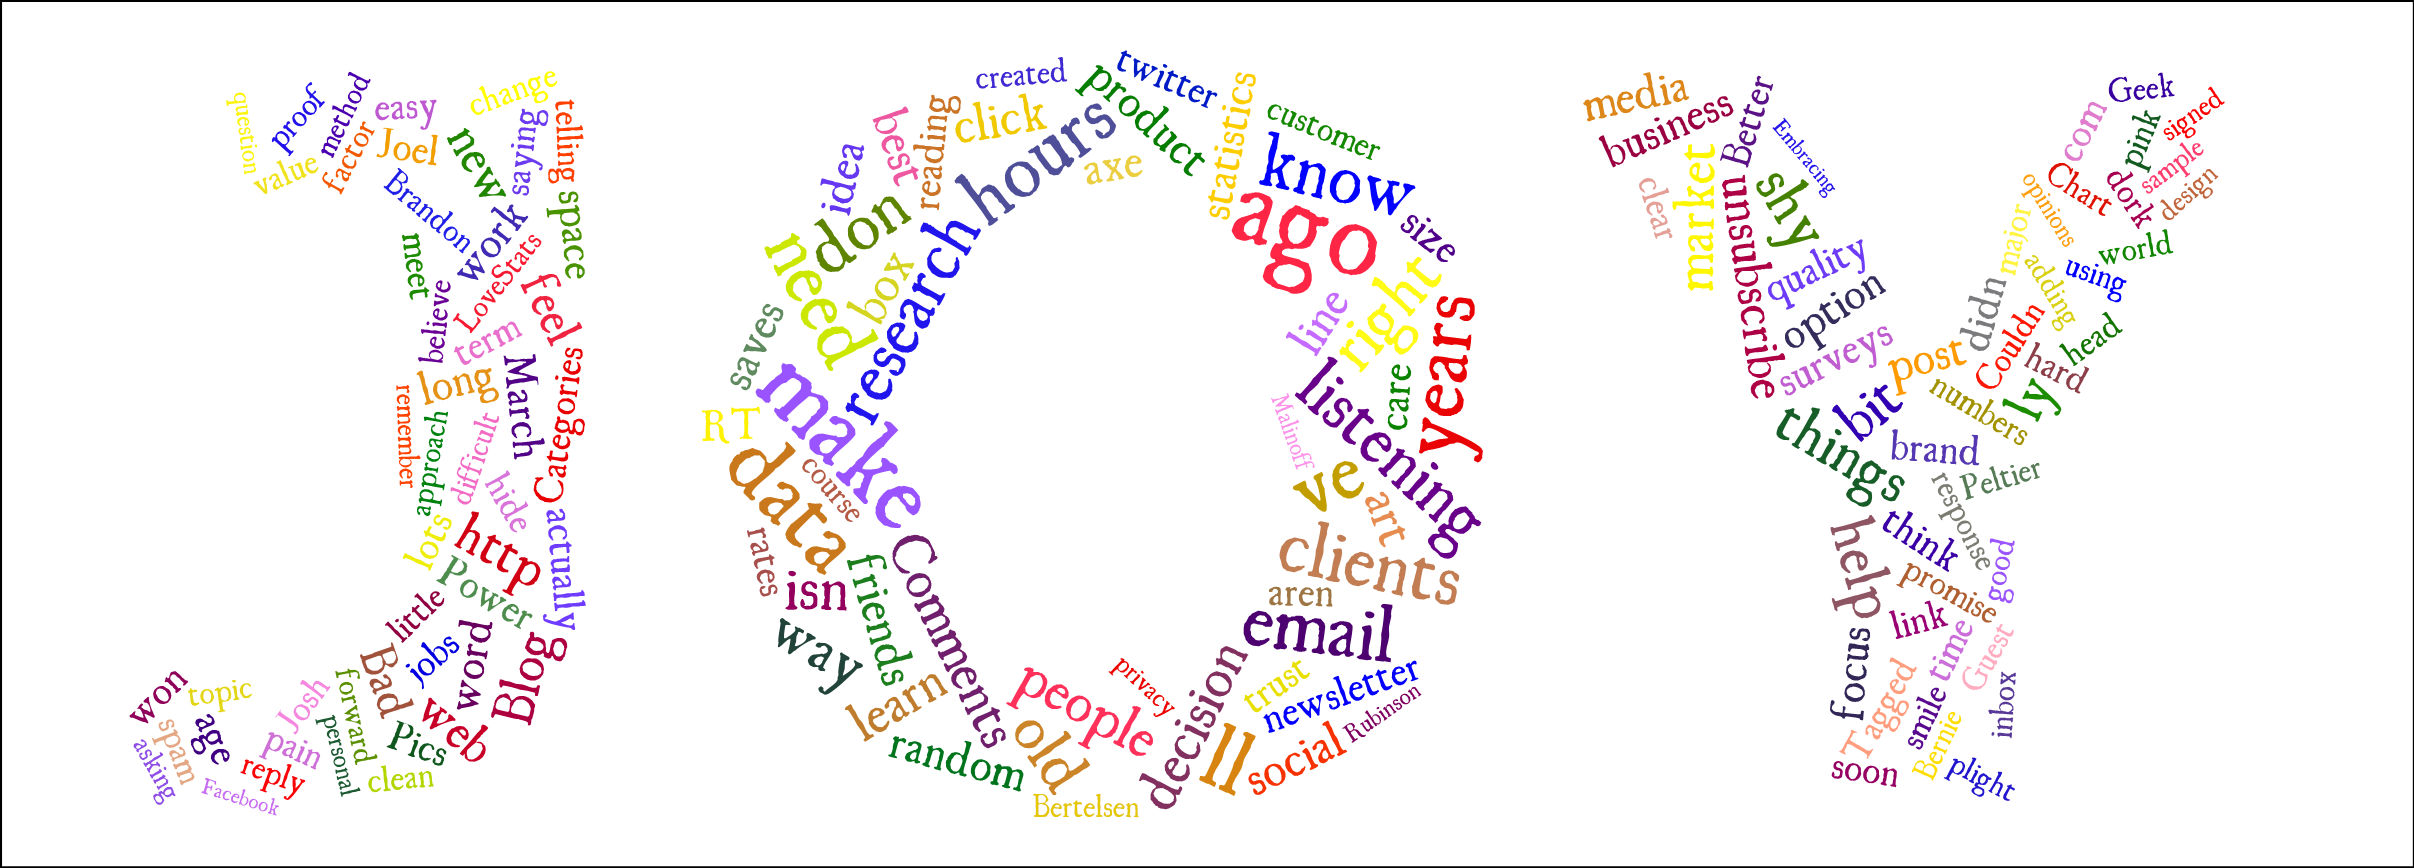 tagxedo for colorful shapeable saveable word clouds